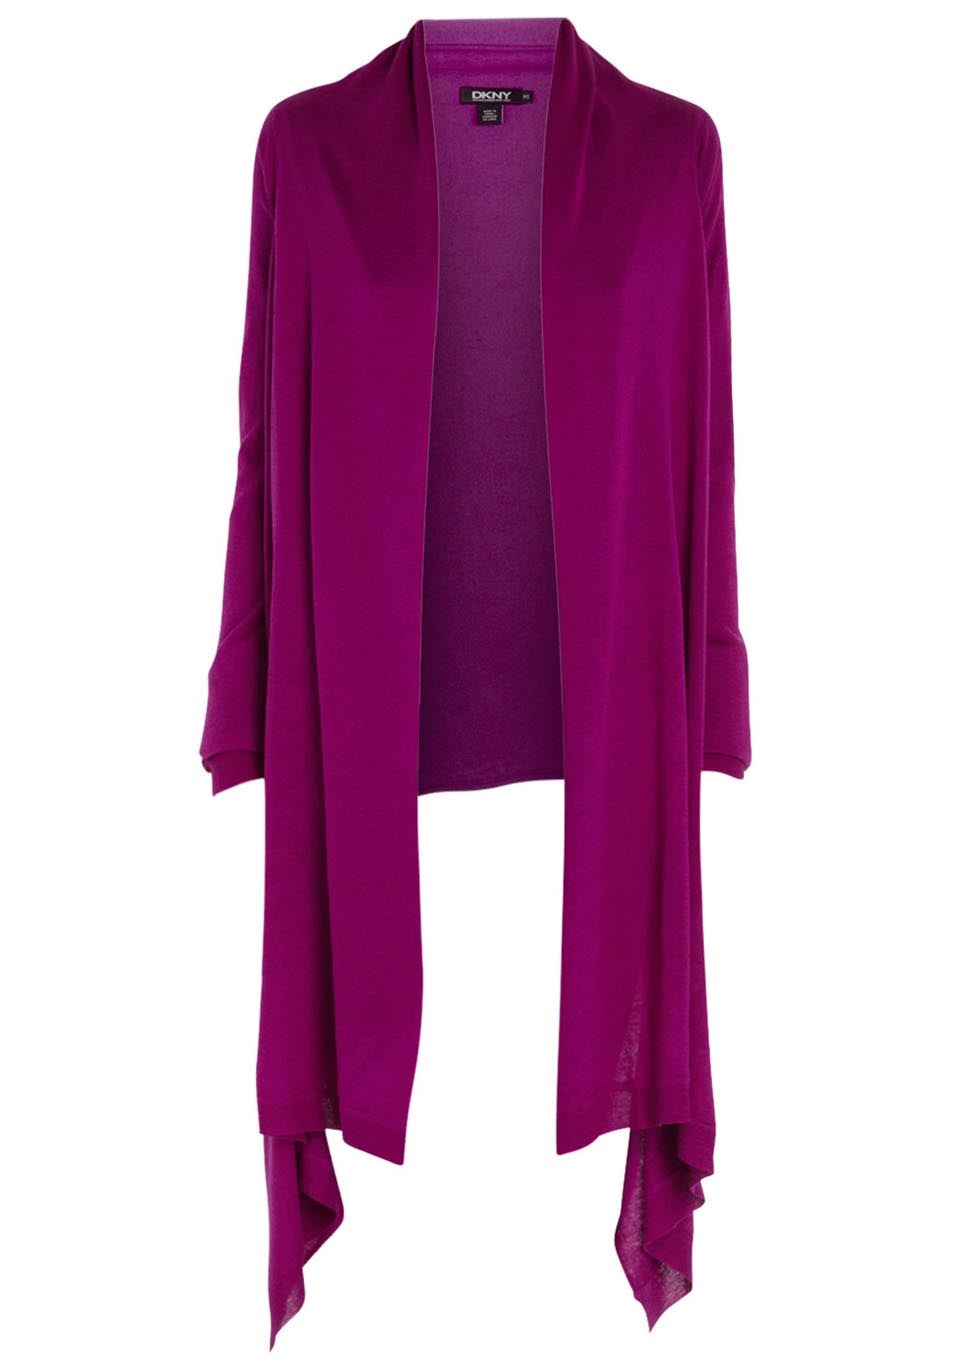 Purple Silk And Cashmere Blend Cozy - pattern: plain; neckline: waterfall neck; style: open front; predominant colour: purple; occasions: casual, creative work; length: standard; fibres: silk - mix; fit: standard fit; back detail: shorter hem at back than at front; sleeve length: long sleeve; sleeve style: standard; texture group: knits/crochet; pattern type: knitted - fine stitch; trends: hot brights; season: s/s 2014